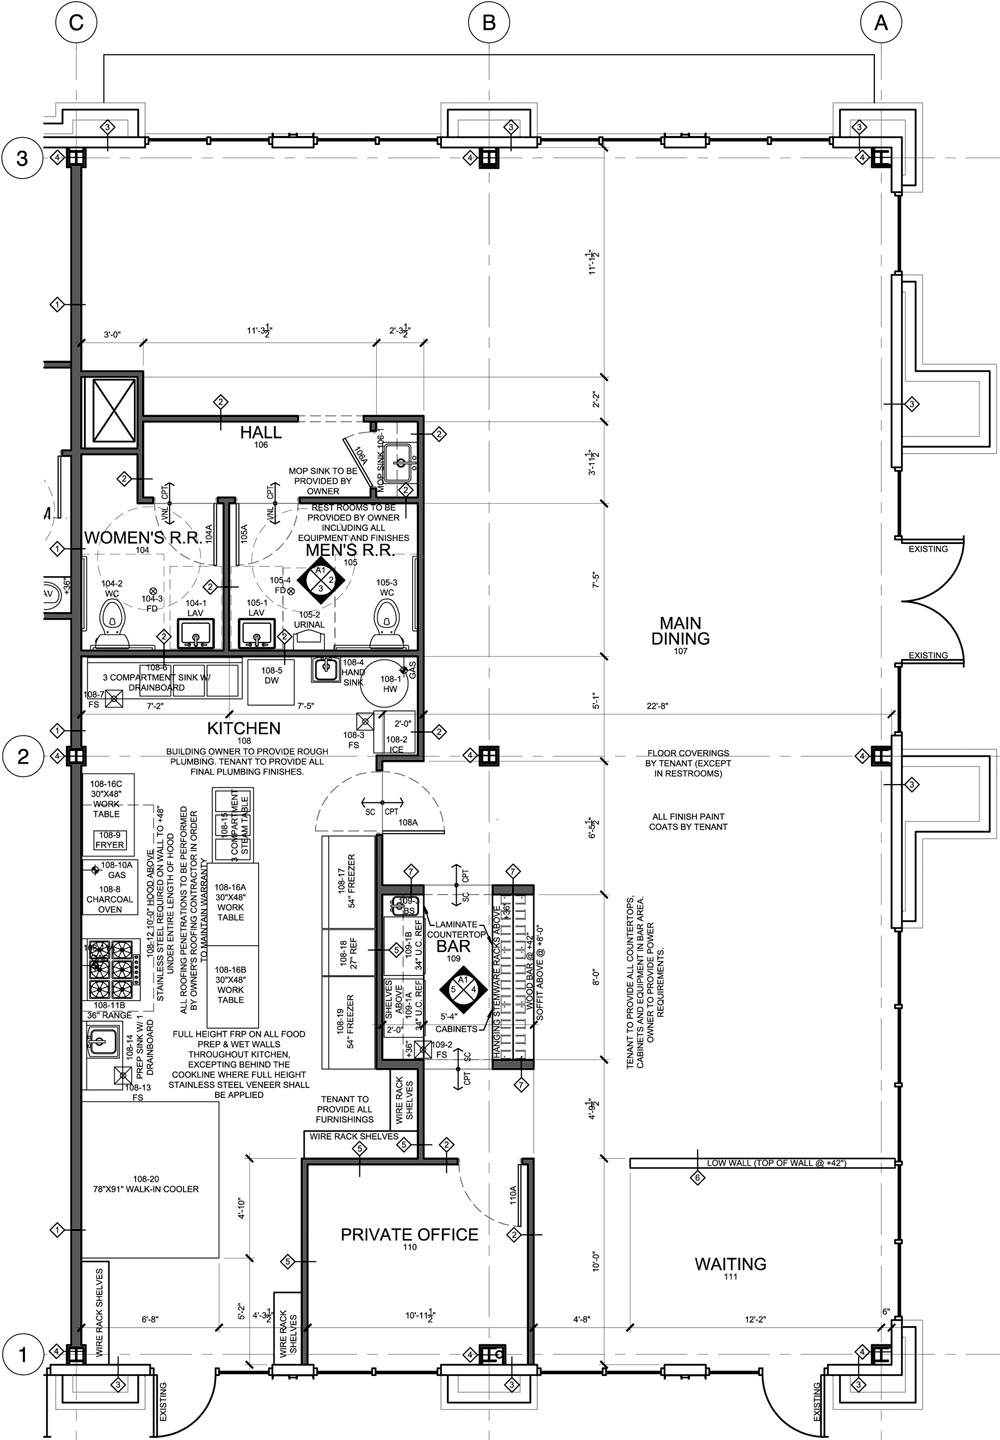 Restaurant Floor Plan For Tenant Improvement Taste Of Himalaya Nepalese Restaurant Evstudio